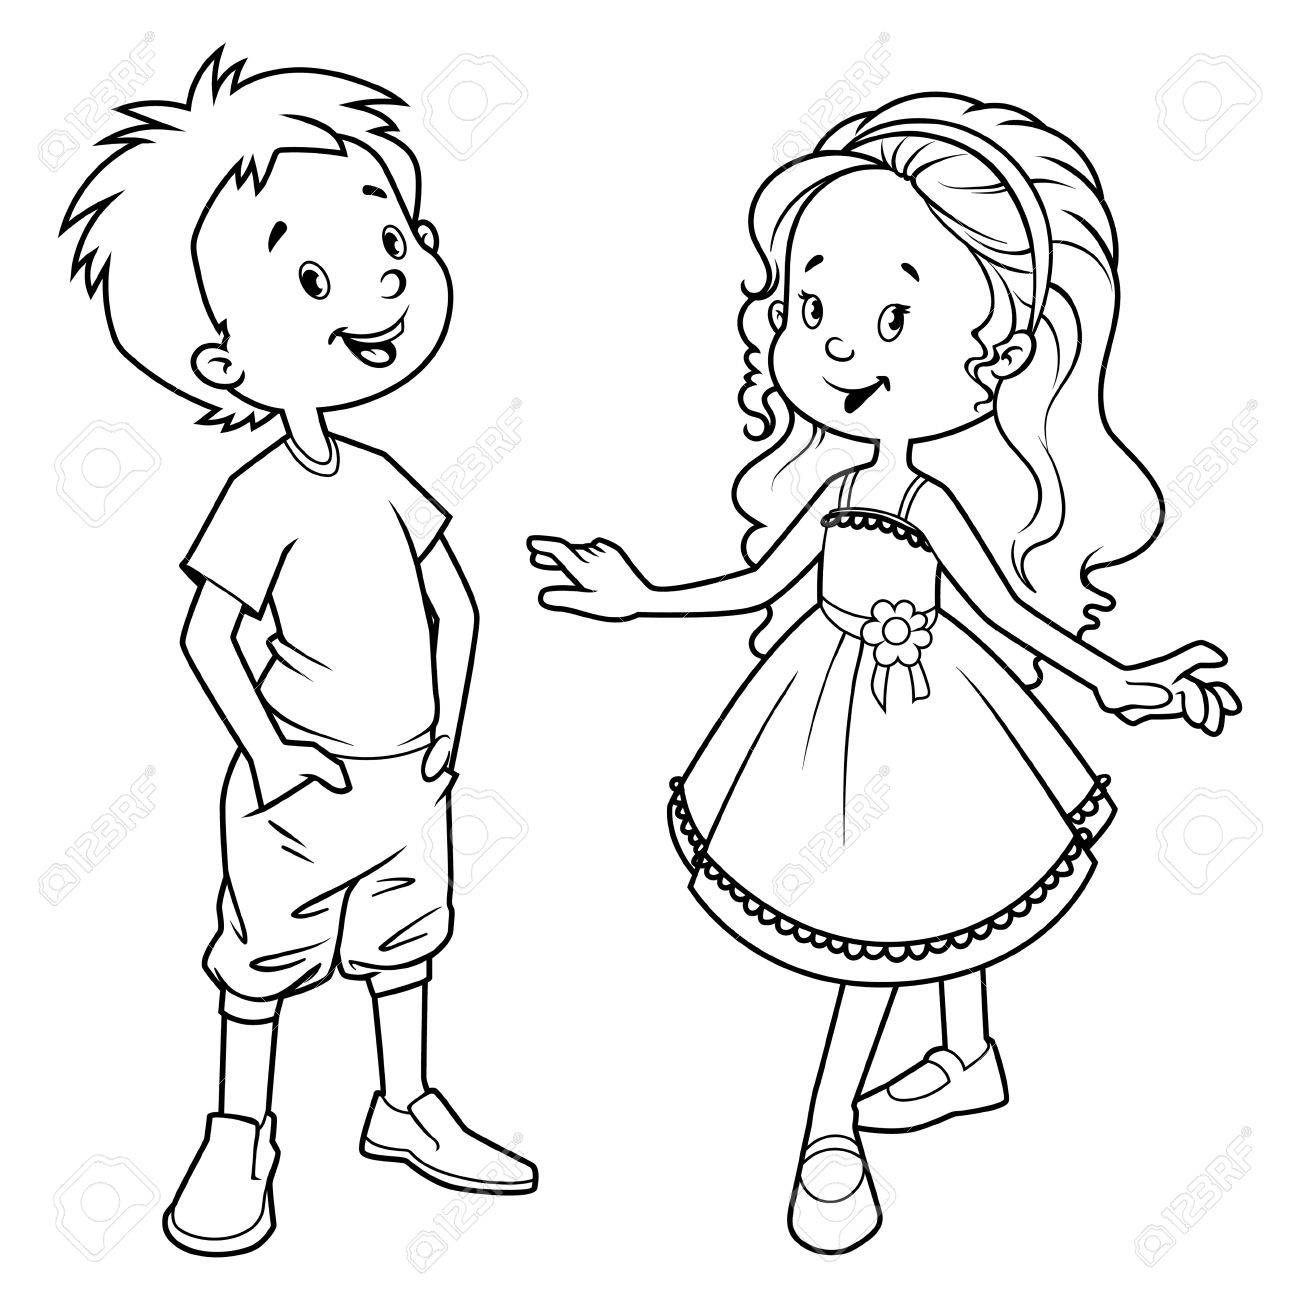 Black and white clipart images of boys and girls picture library download Boy And Girl Clipart Black And White (94+ images in Collection) Page 1 picture library download